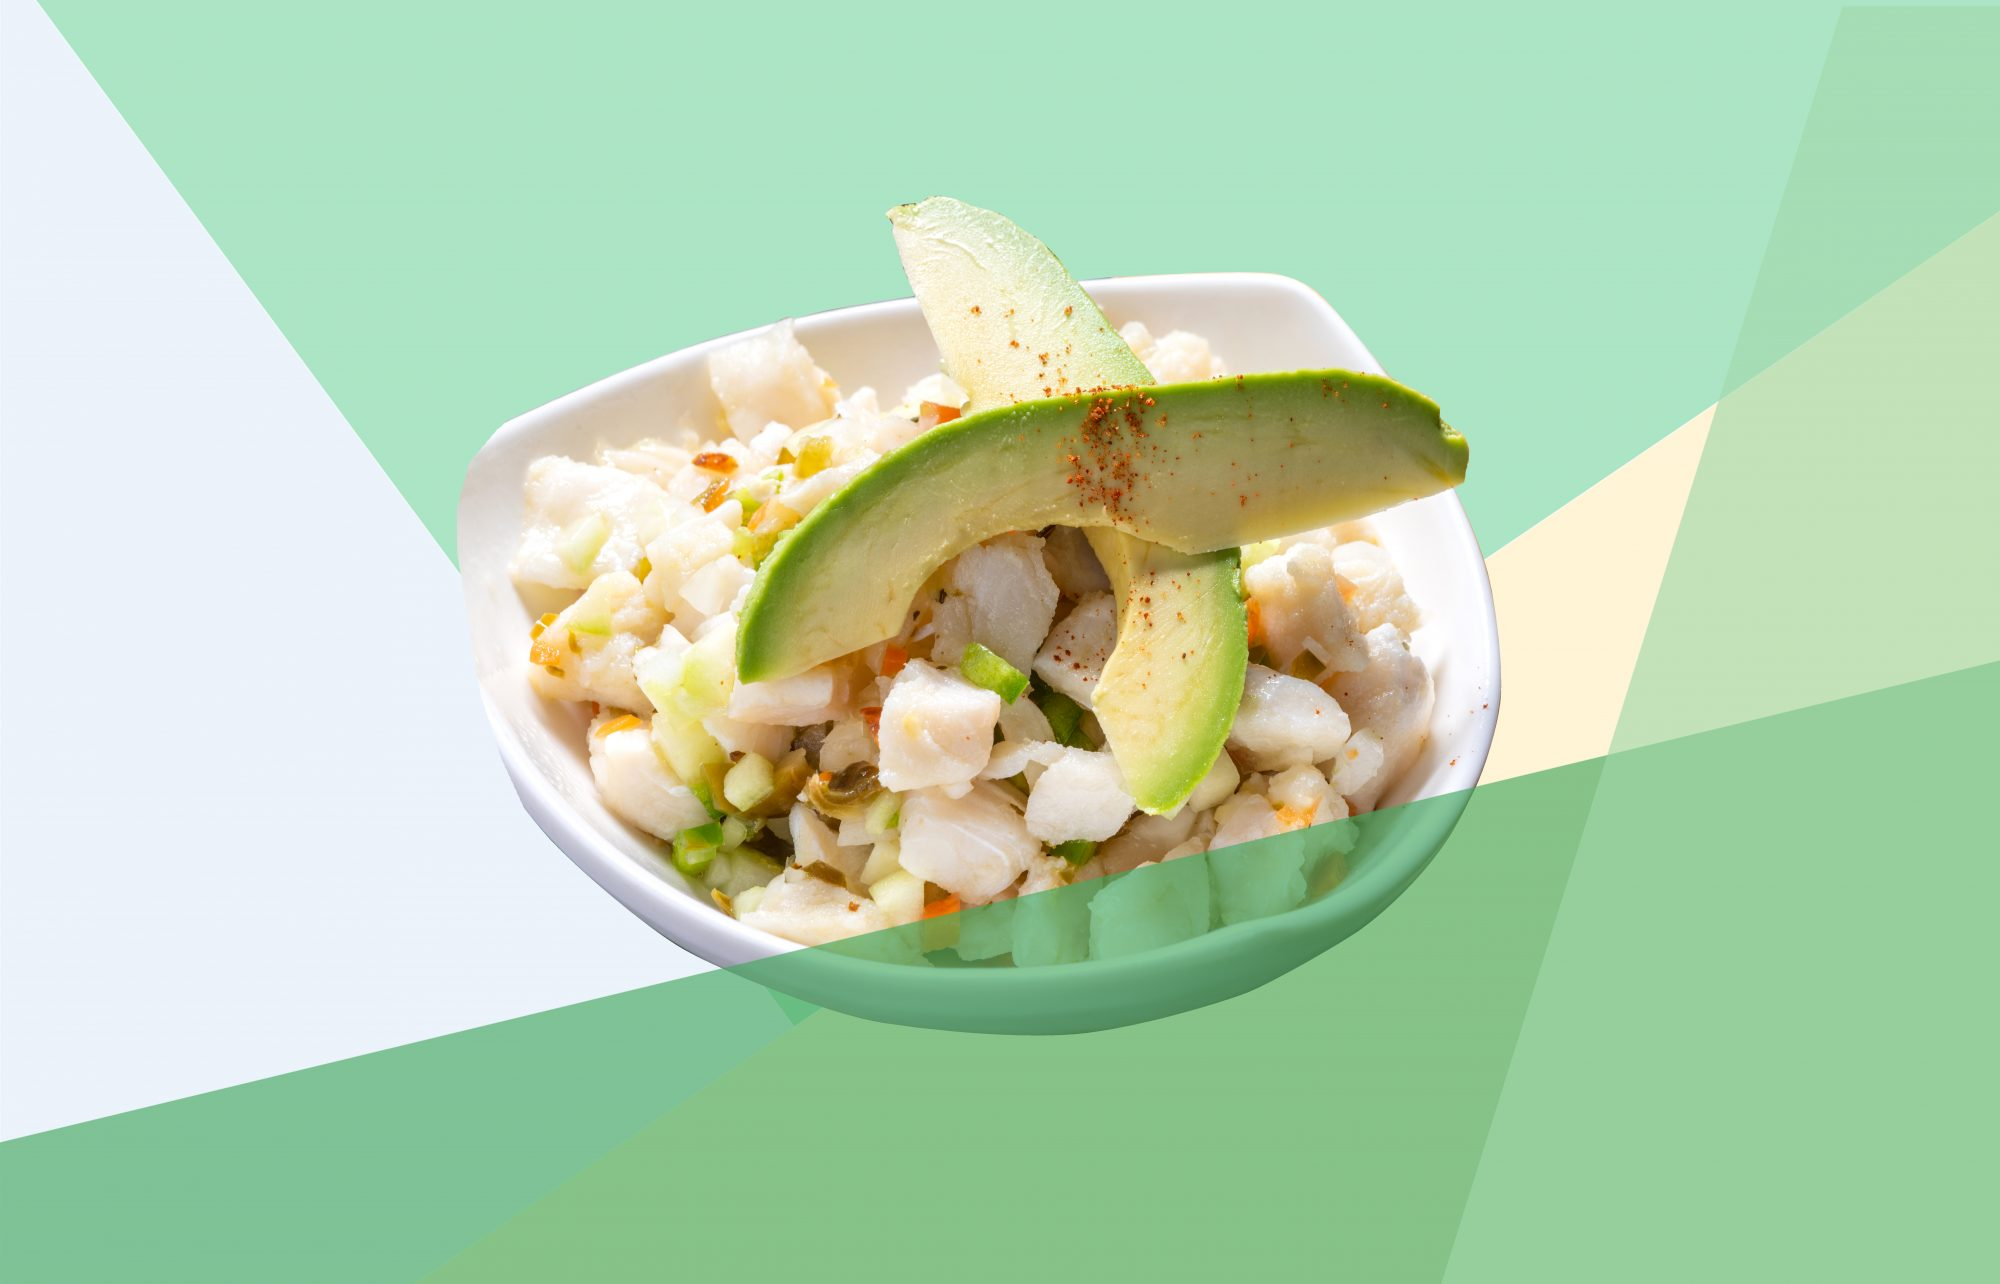 Homemade Ceviche Couldn't Be Easier—Here's How to Do it Right